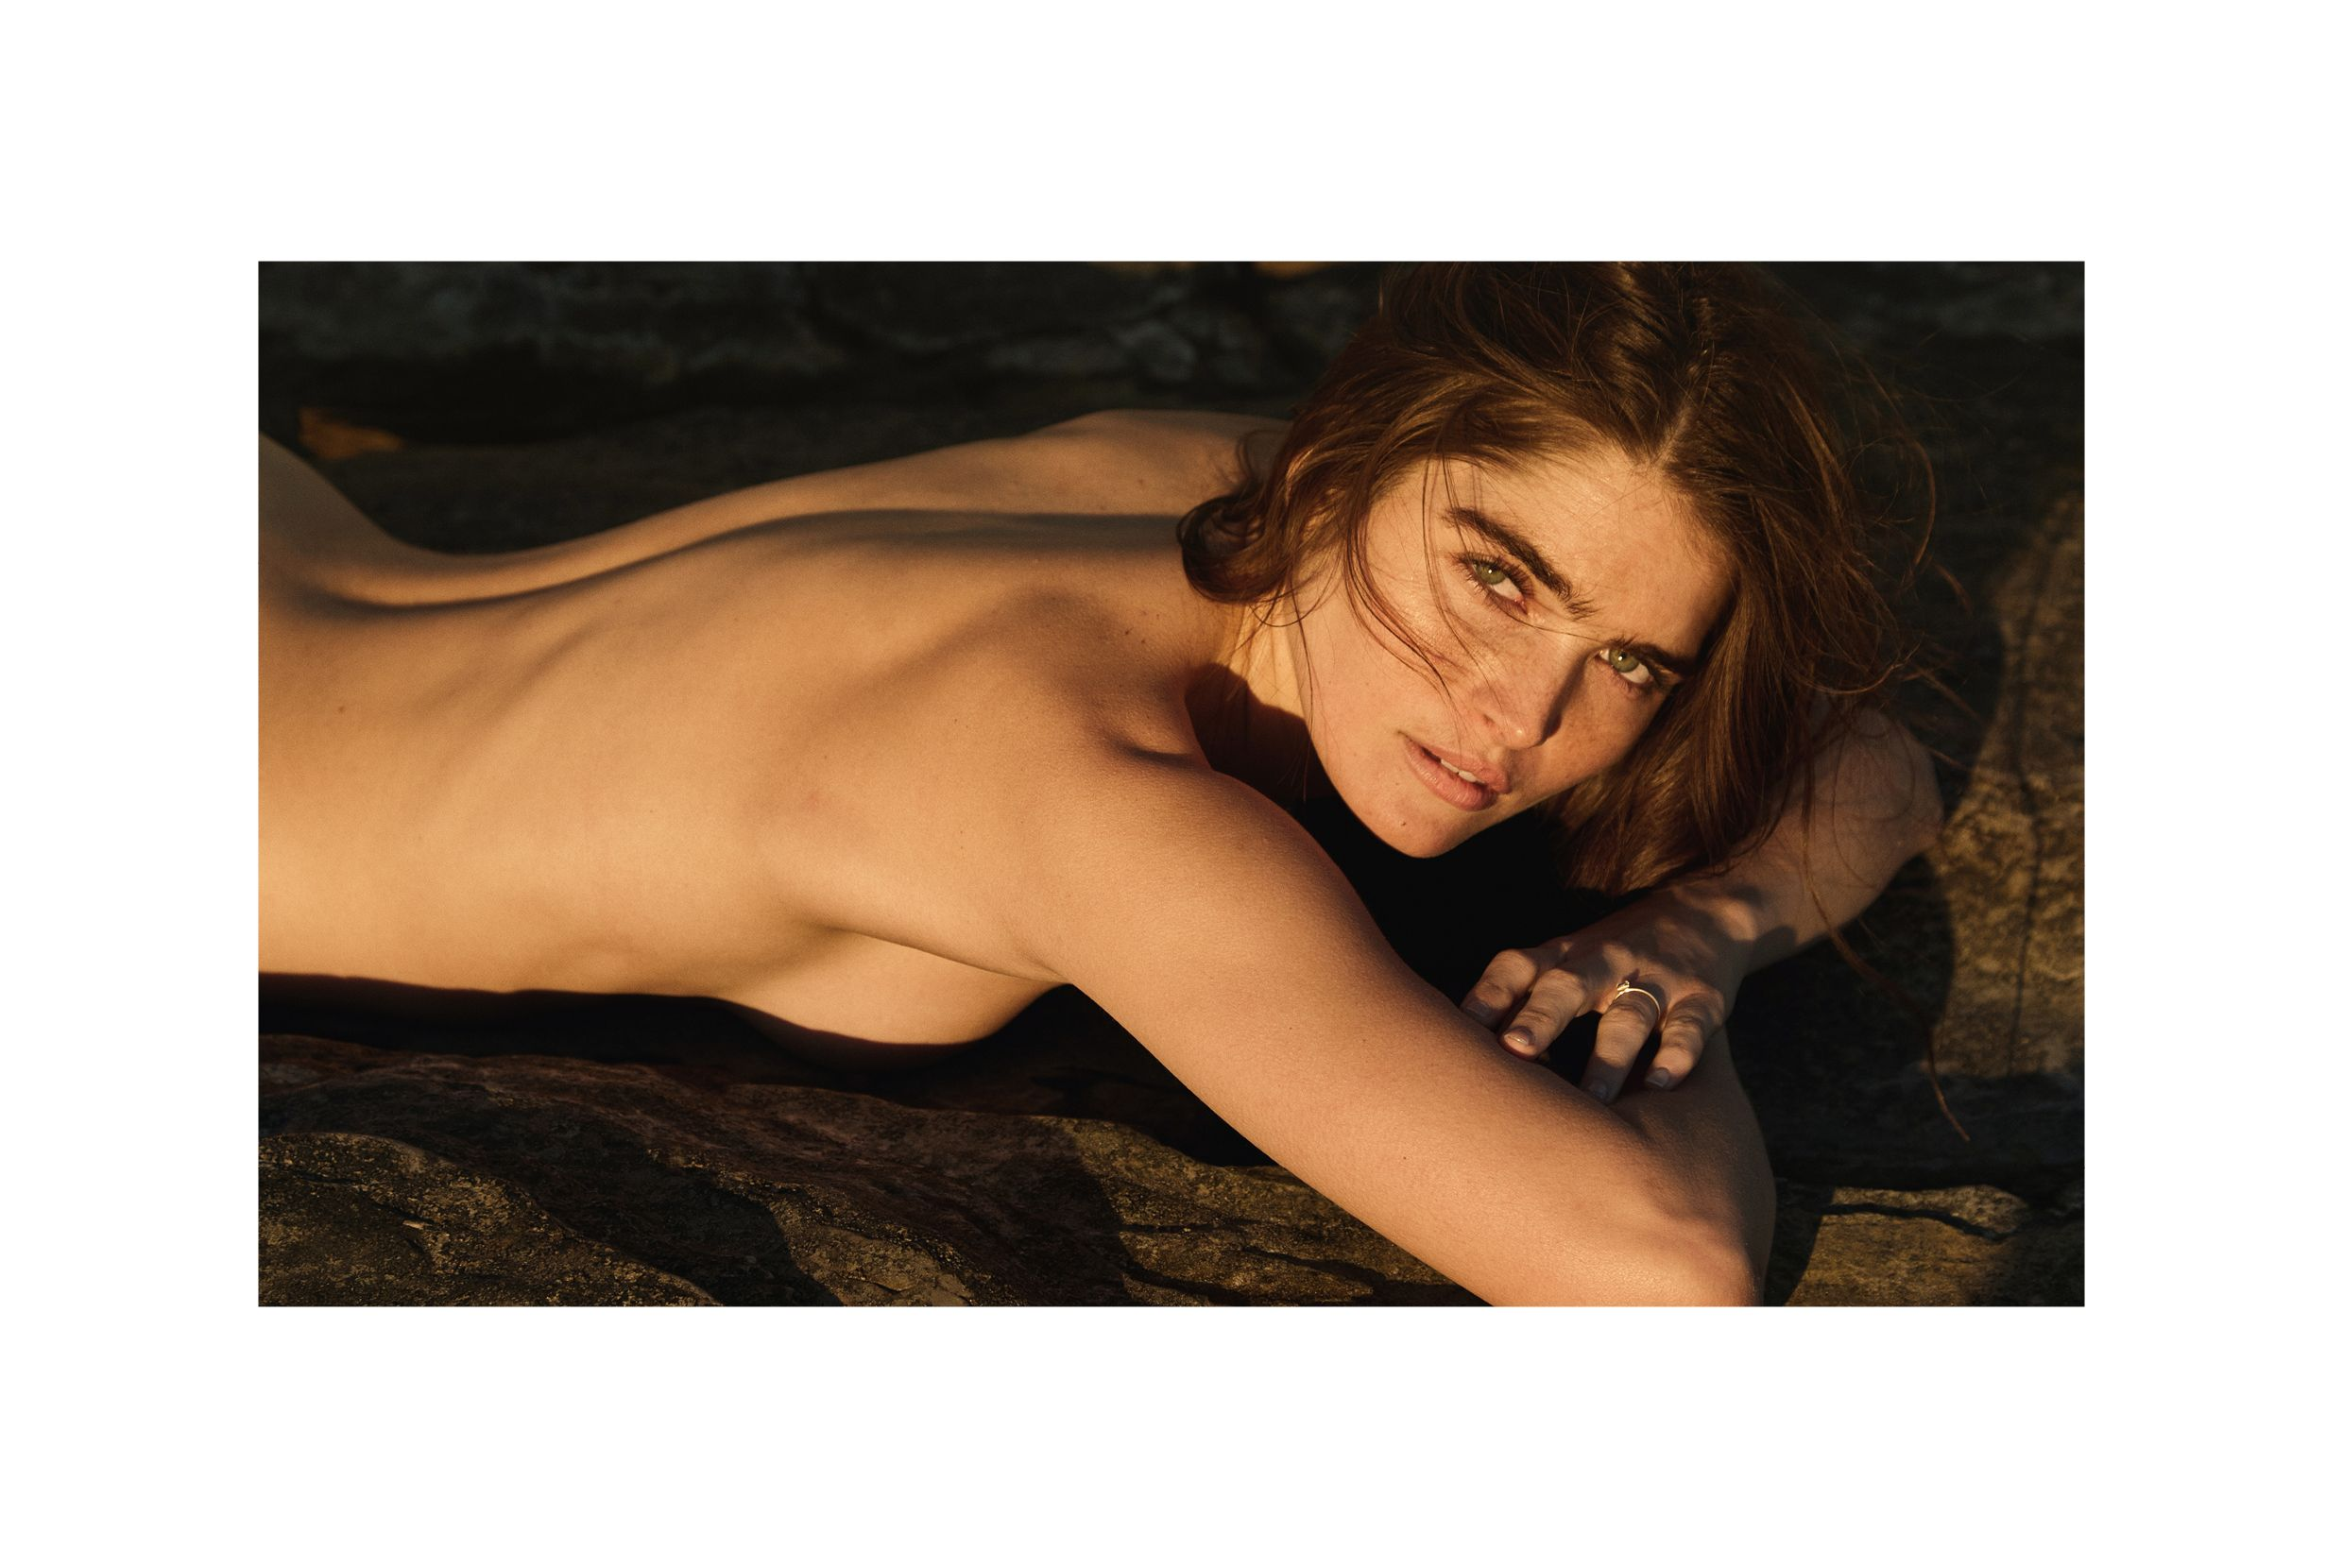 Images Samantha DiGiacomo nude (46 photos), Topless, Cleavage, Boobs, swimsuit 2017